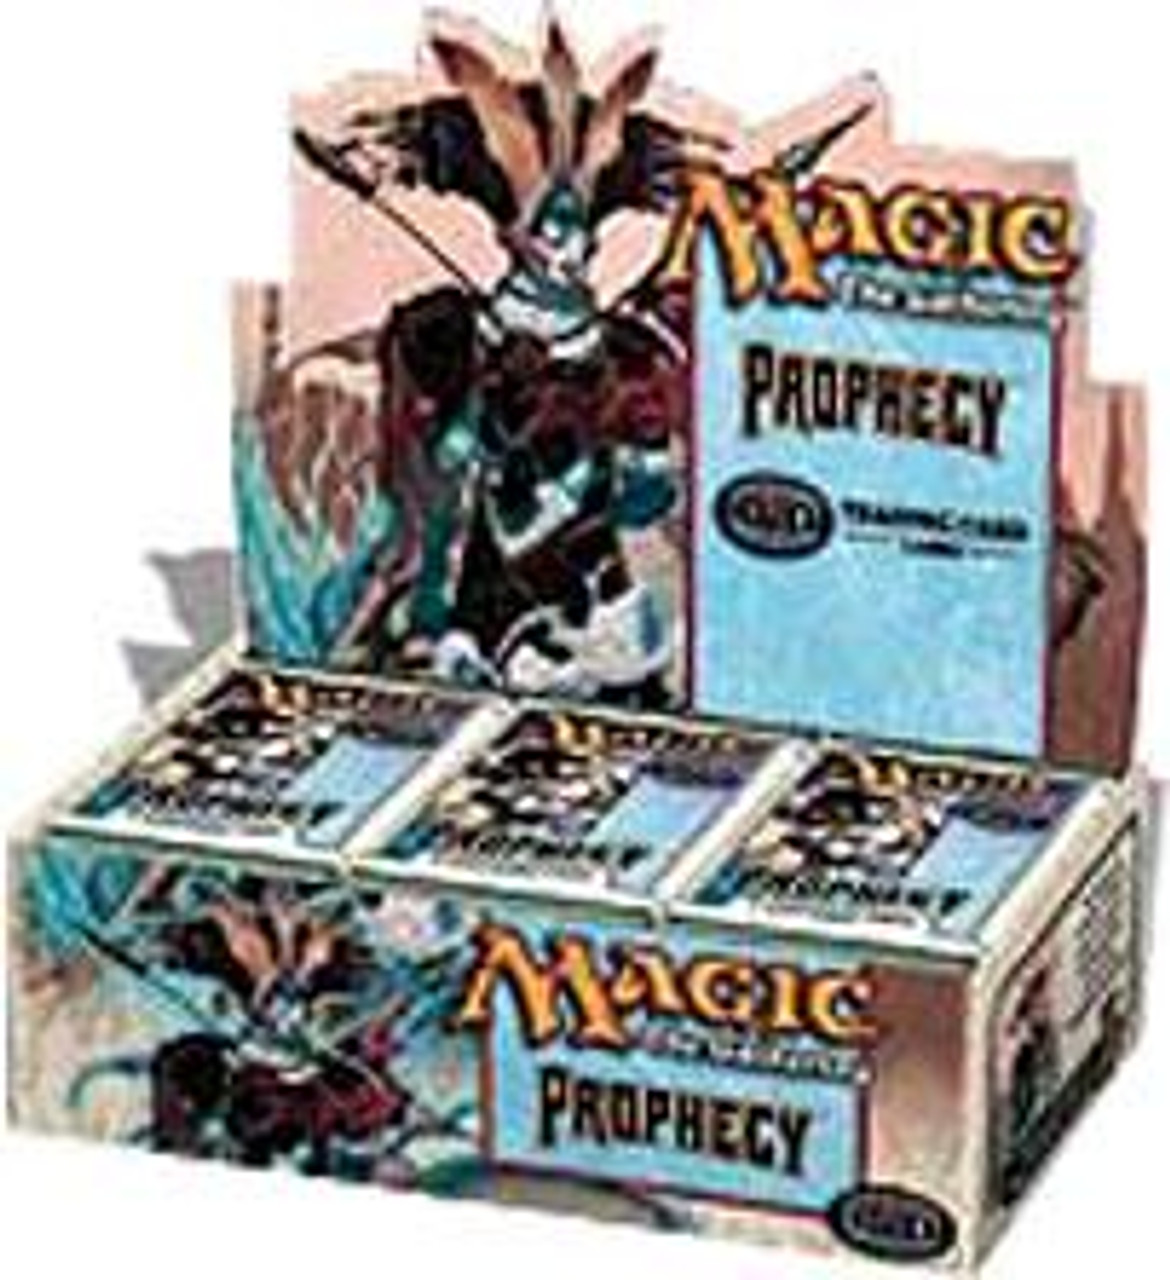 MtG Prophecy Booster Box [Sealed]